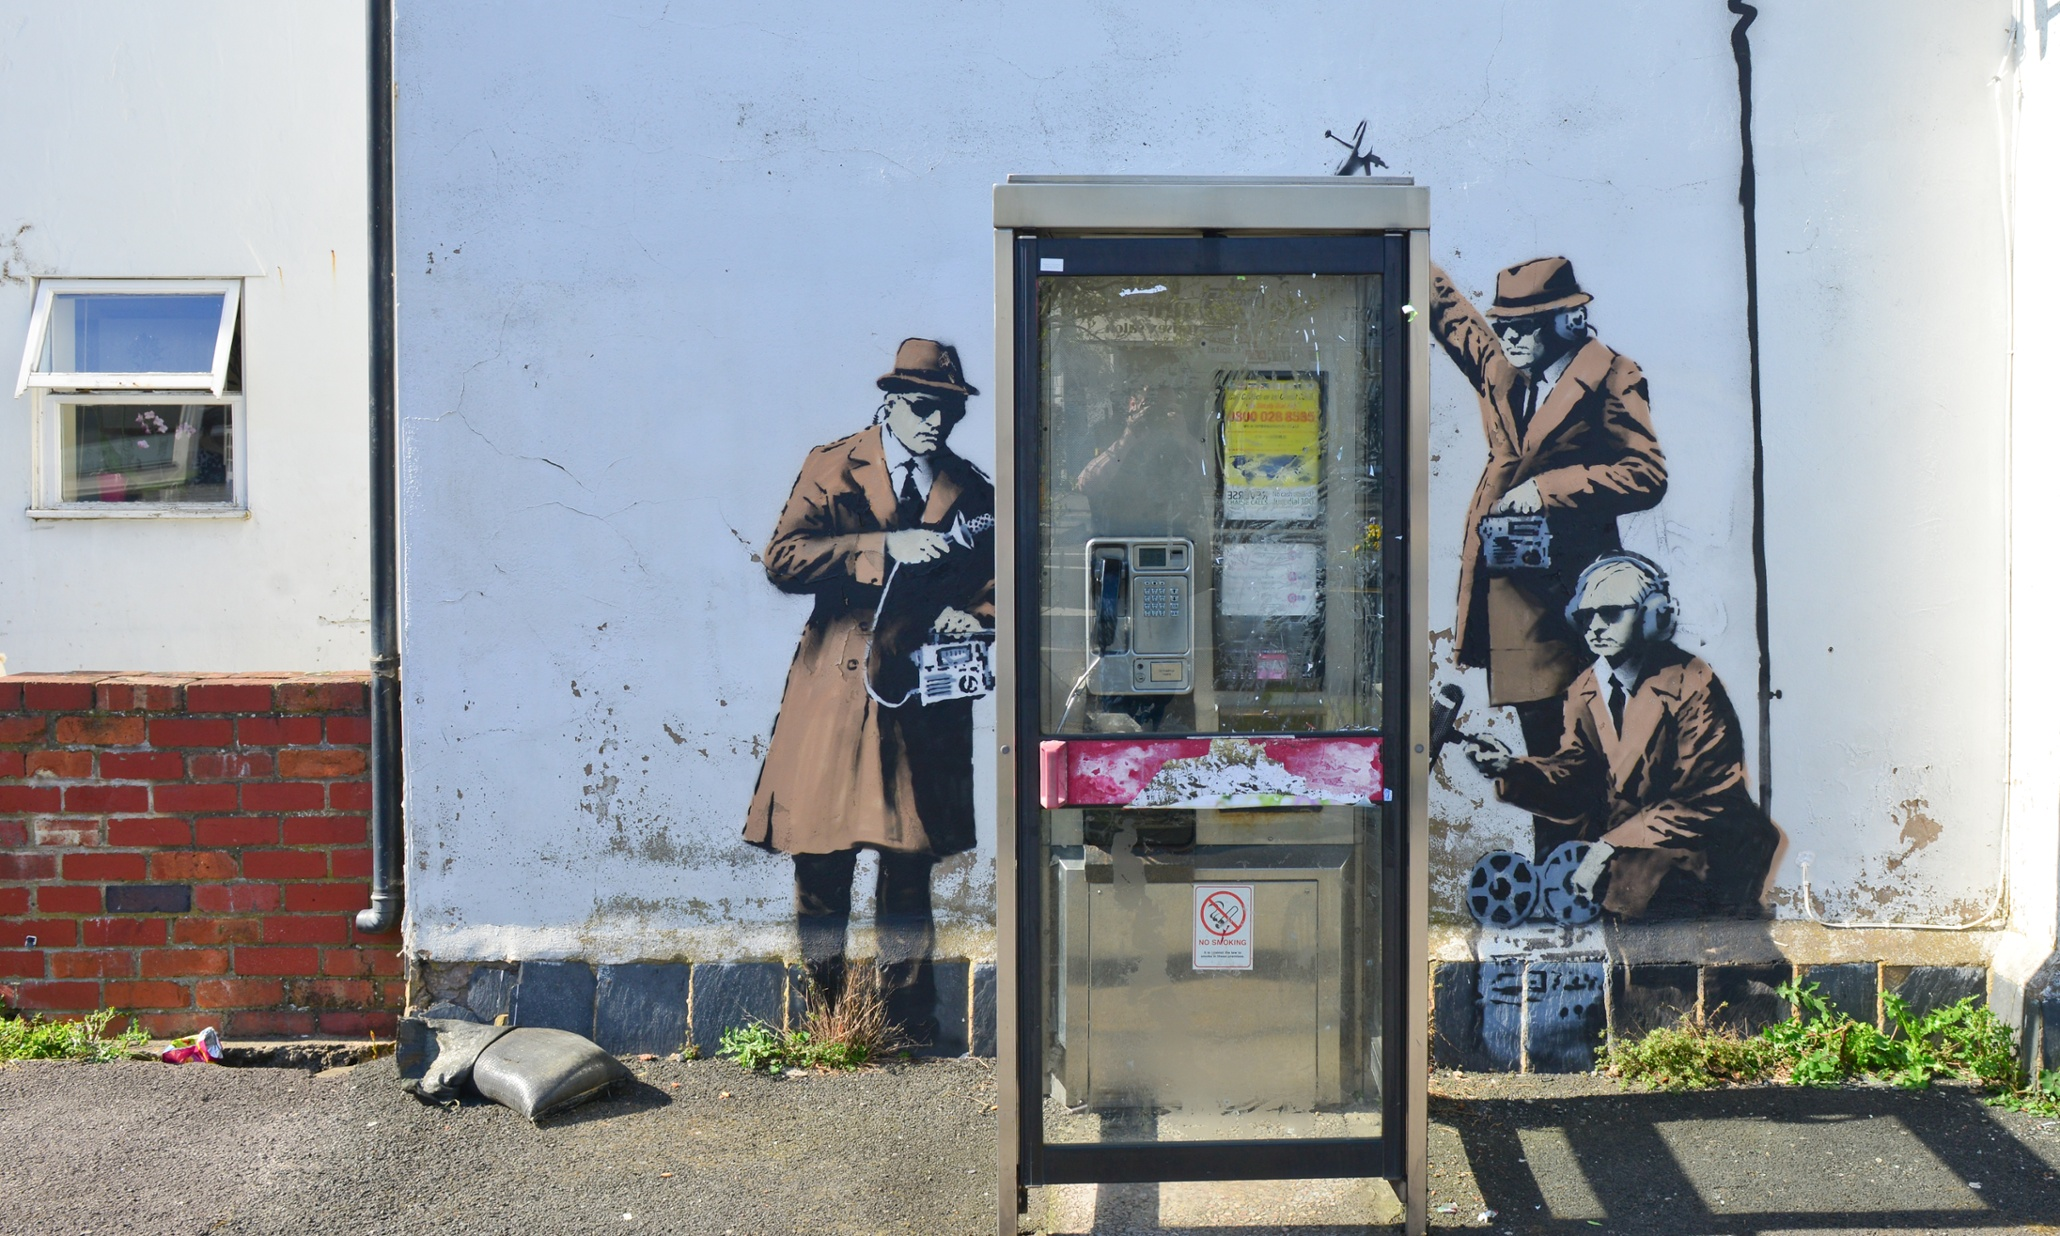 painted mural depicting agents listening in on a phone box